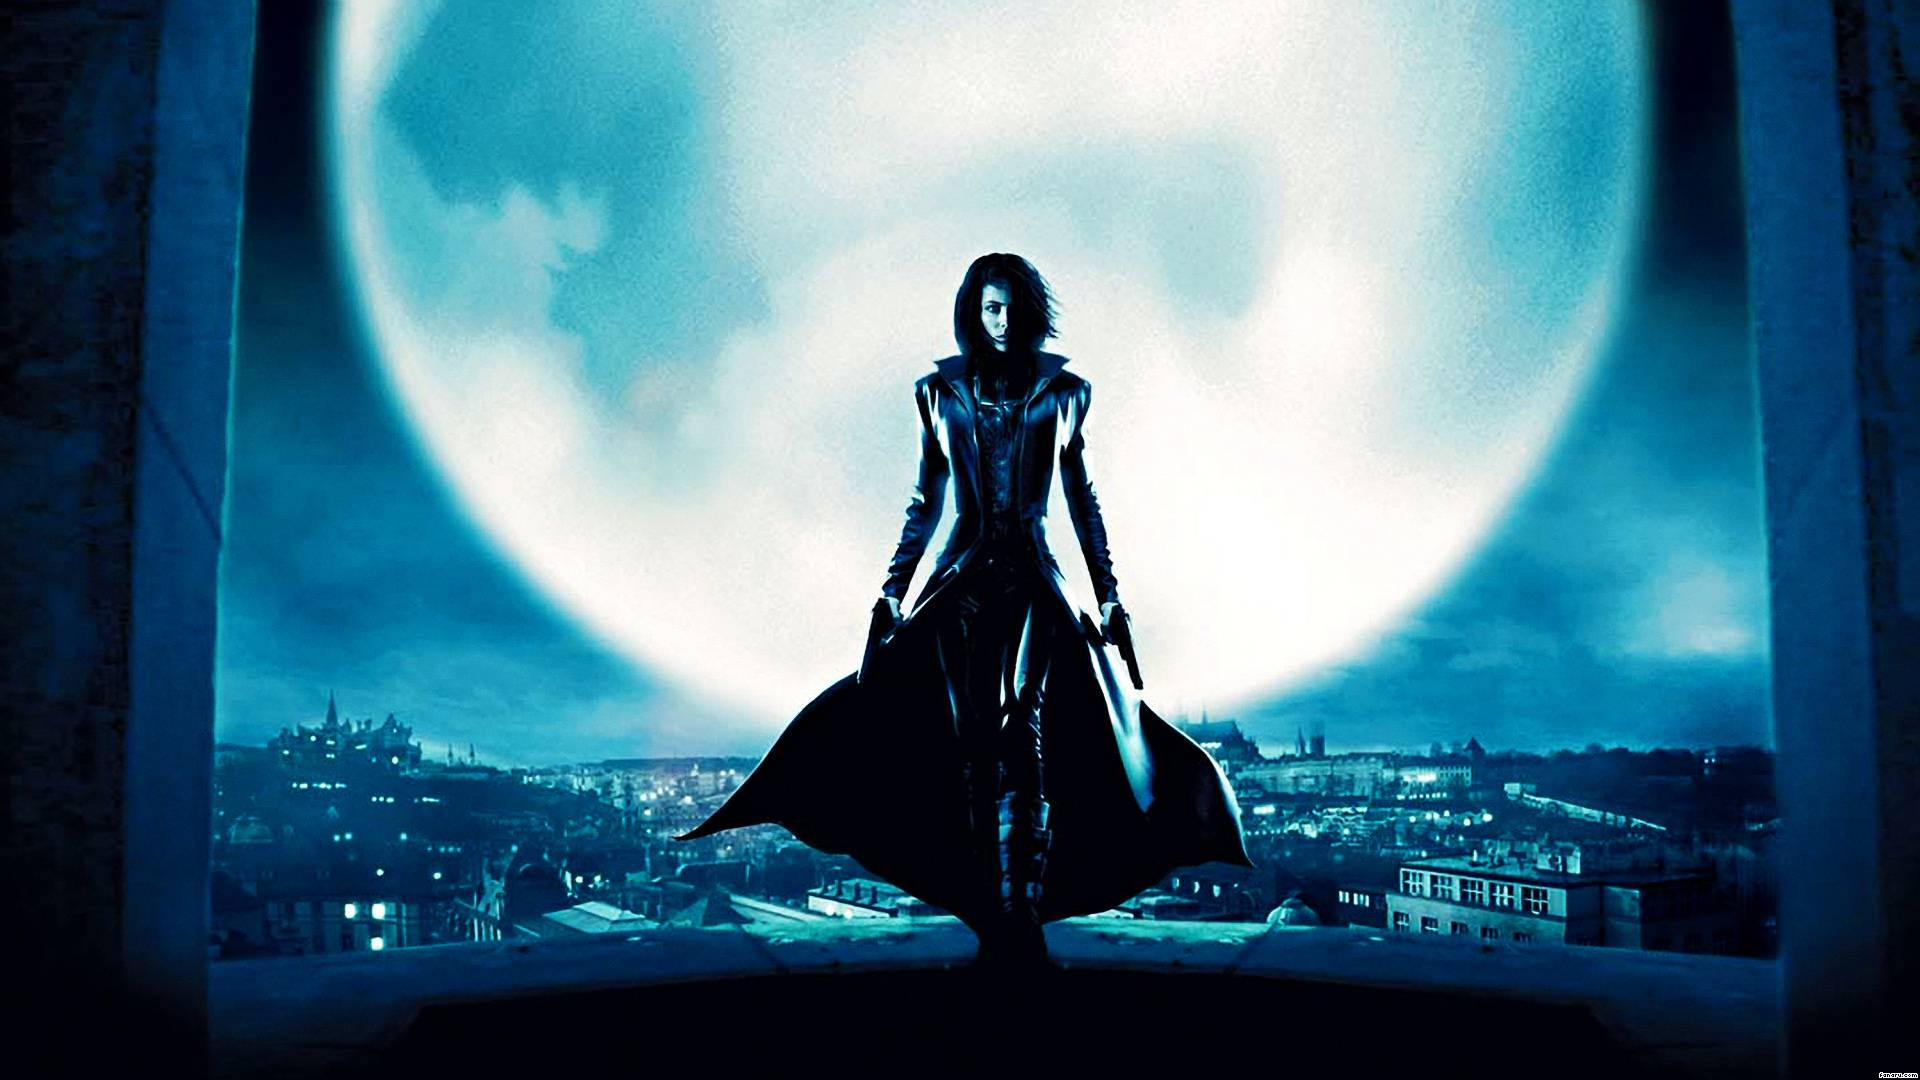 Underworld Wallpaper